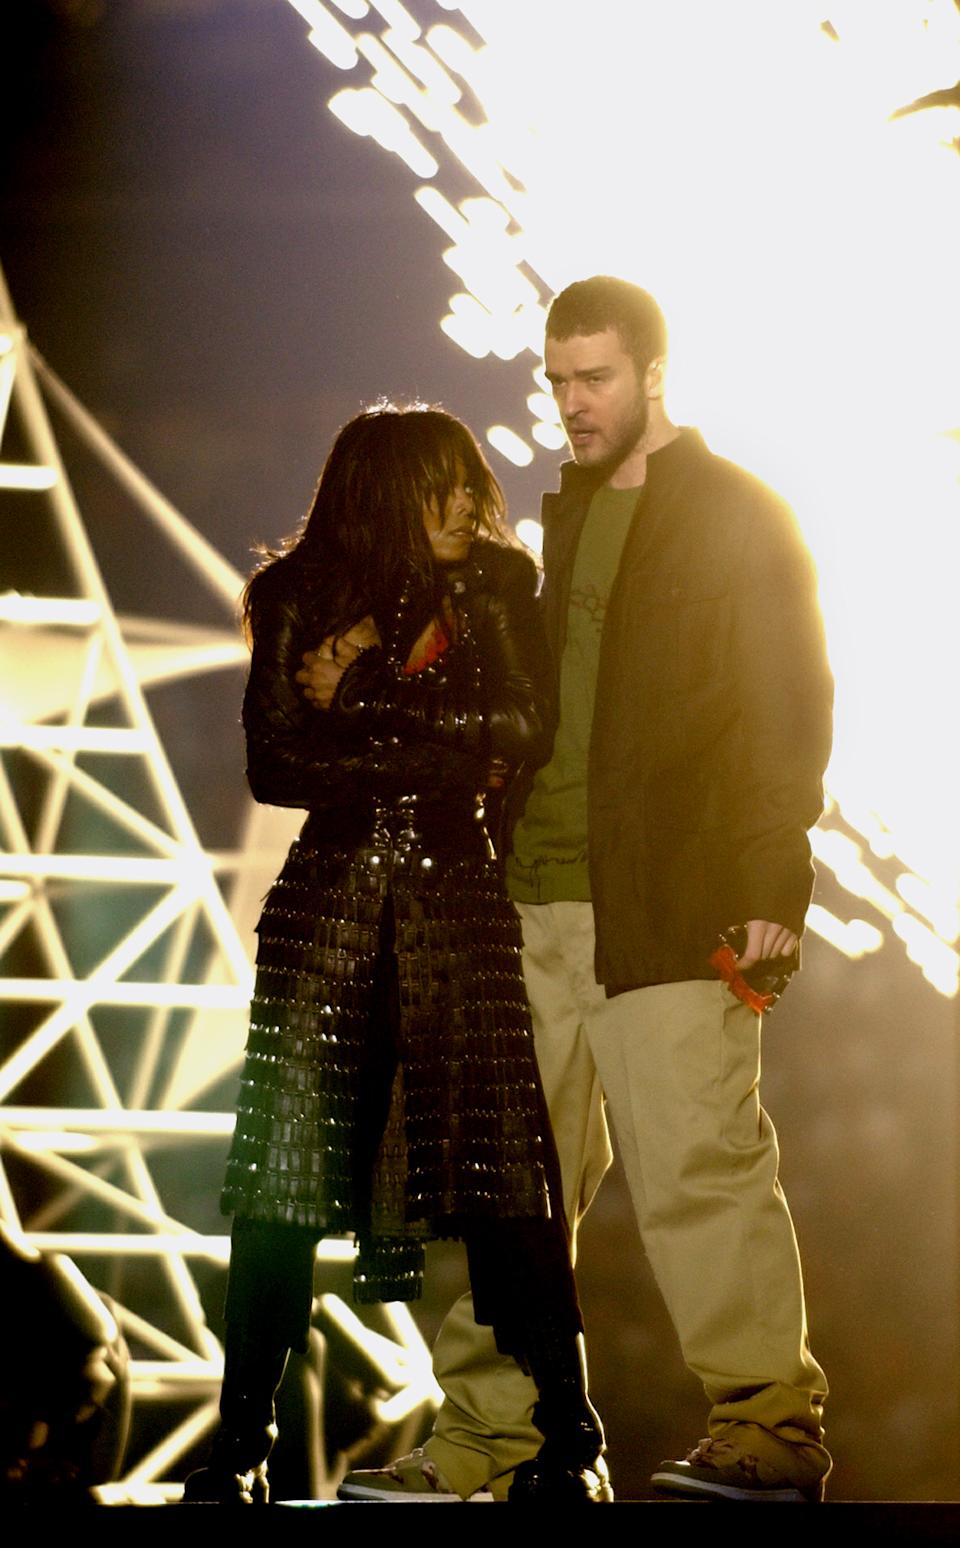 Janet Jackson covers her breast after her outfit came undone during a number with Justin Timberlake during the halftime show of Super Bowl